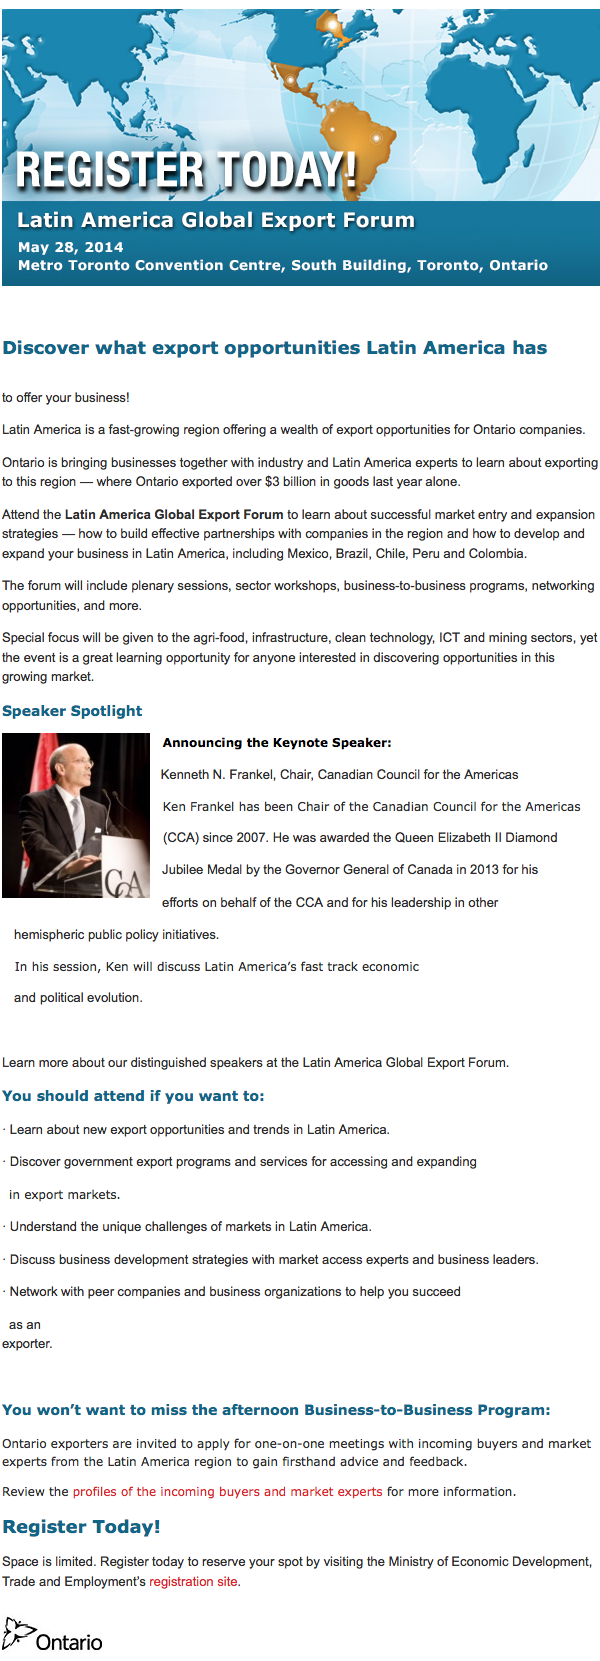 Latin_America_Global_Export_Forum_2014-05-15_14-58-57.png